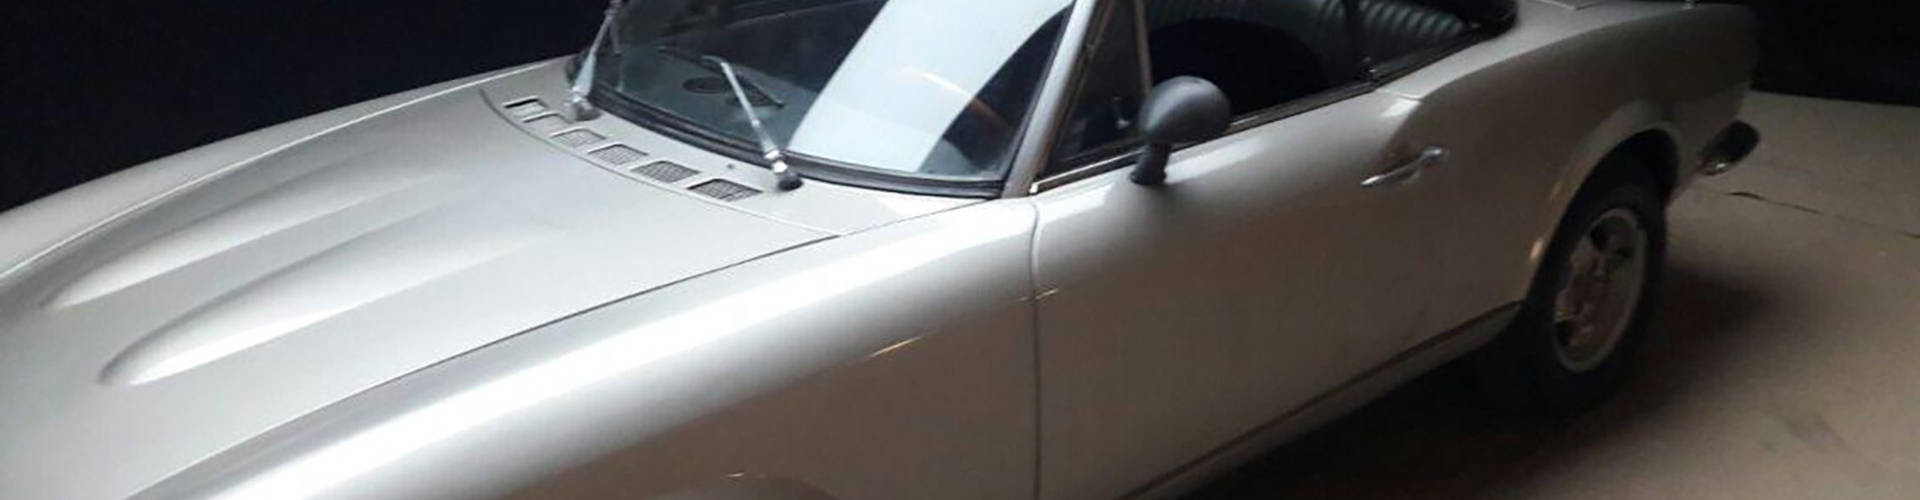 Denitto Classic Cars We Restore And Sell Classic Cars - Sell classic cars